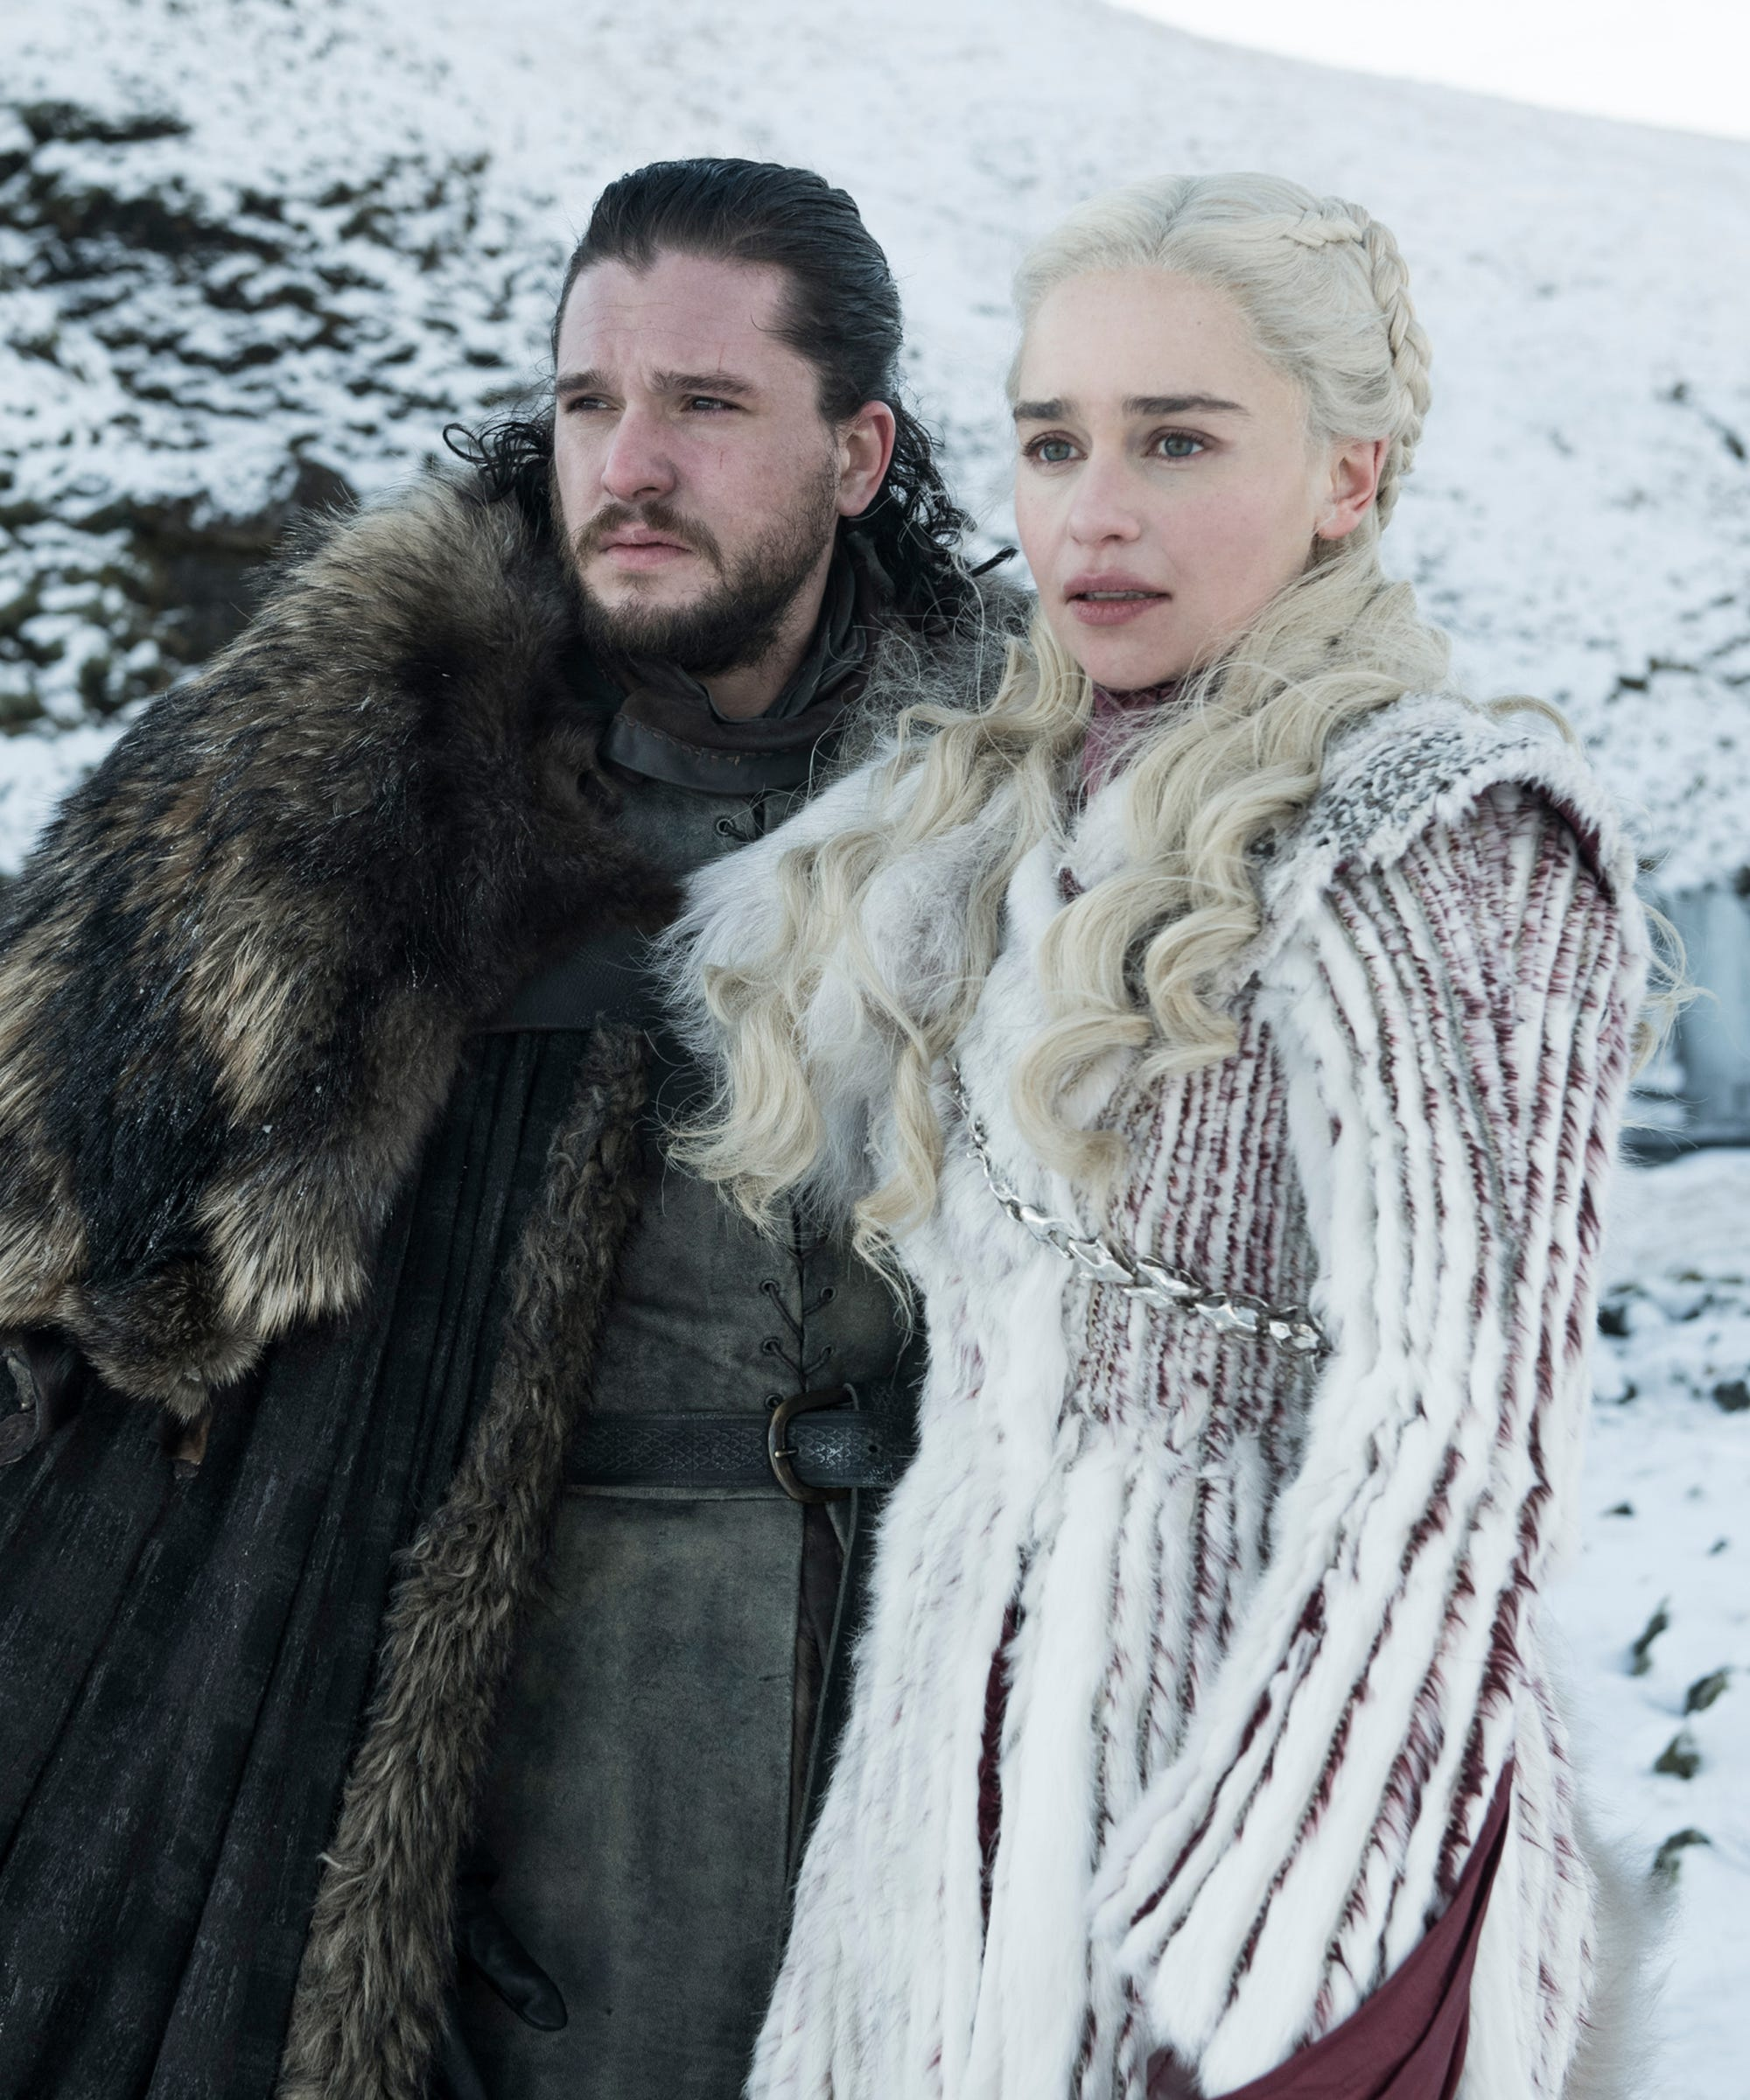 The Leading (And Genuinely Solid) Theories About How Game Of Thrones Will End